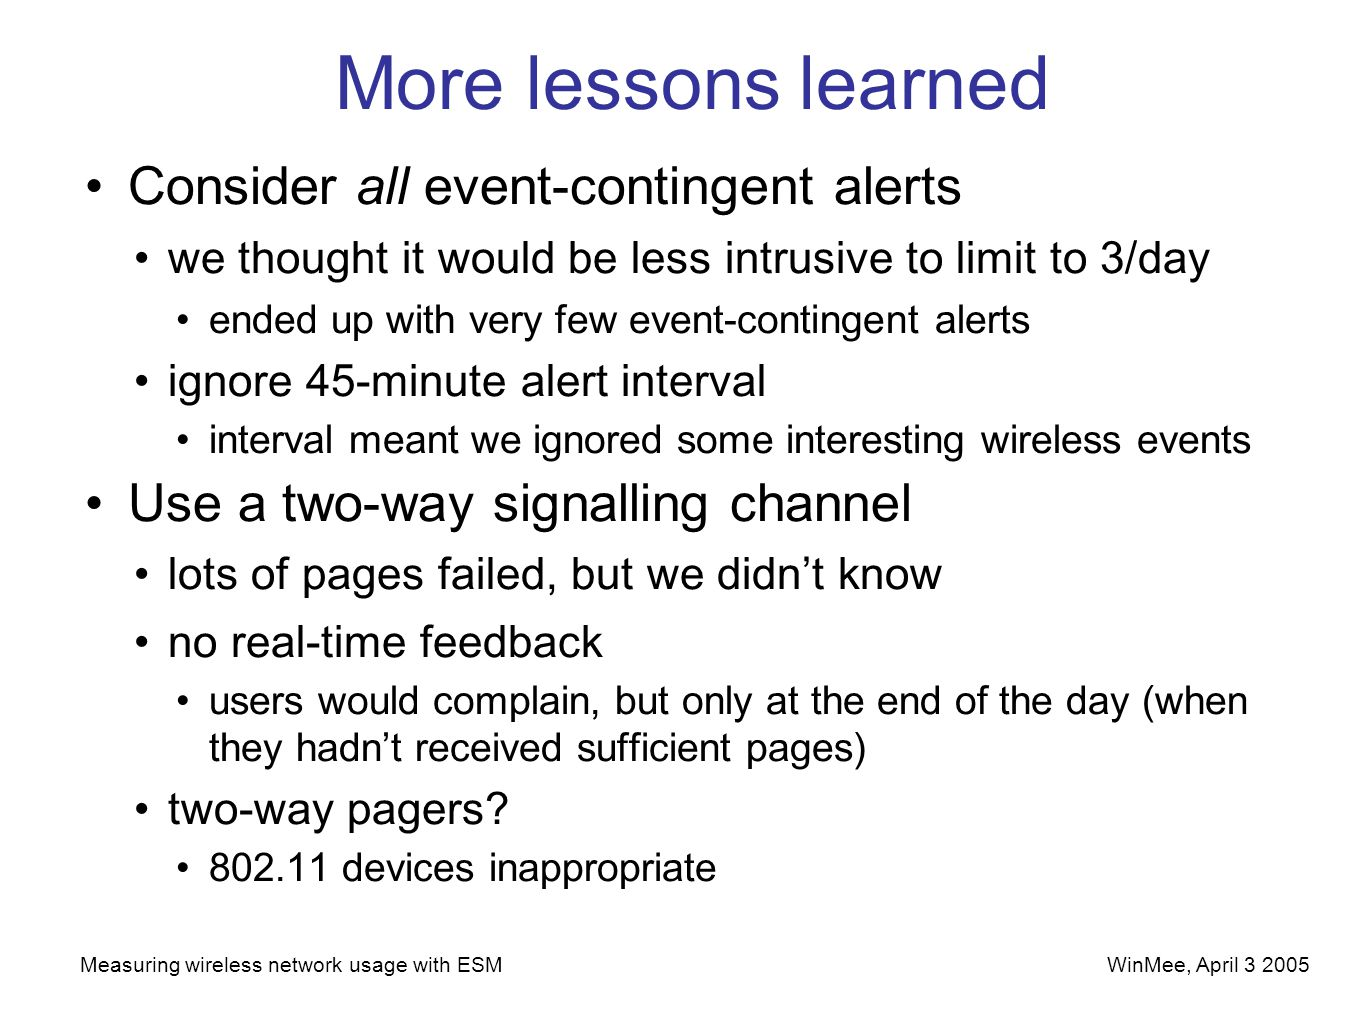 WinMee, April 3 2005Measuring wireless network usage with ESM More lessons learned Consider all event-contingent alerts we thought it would be less in